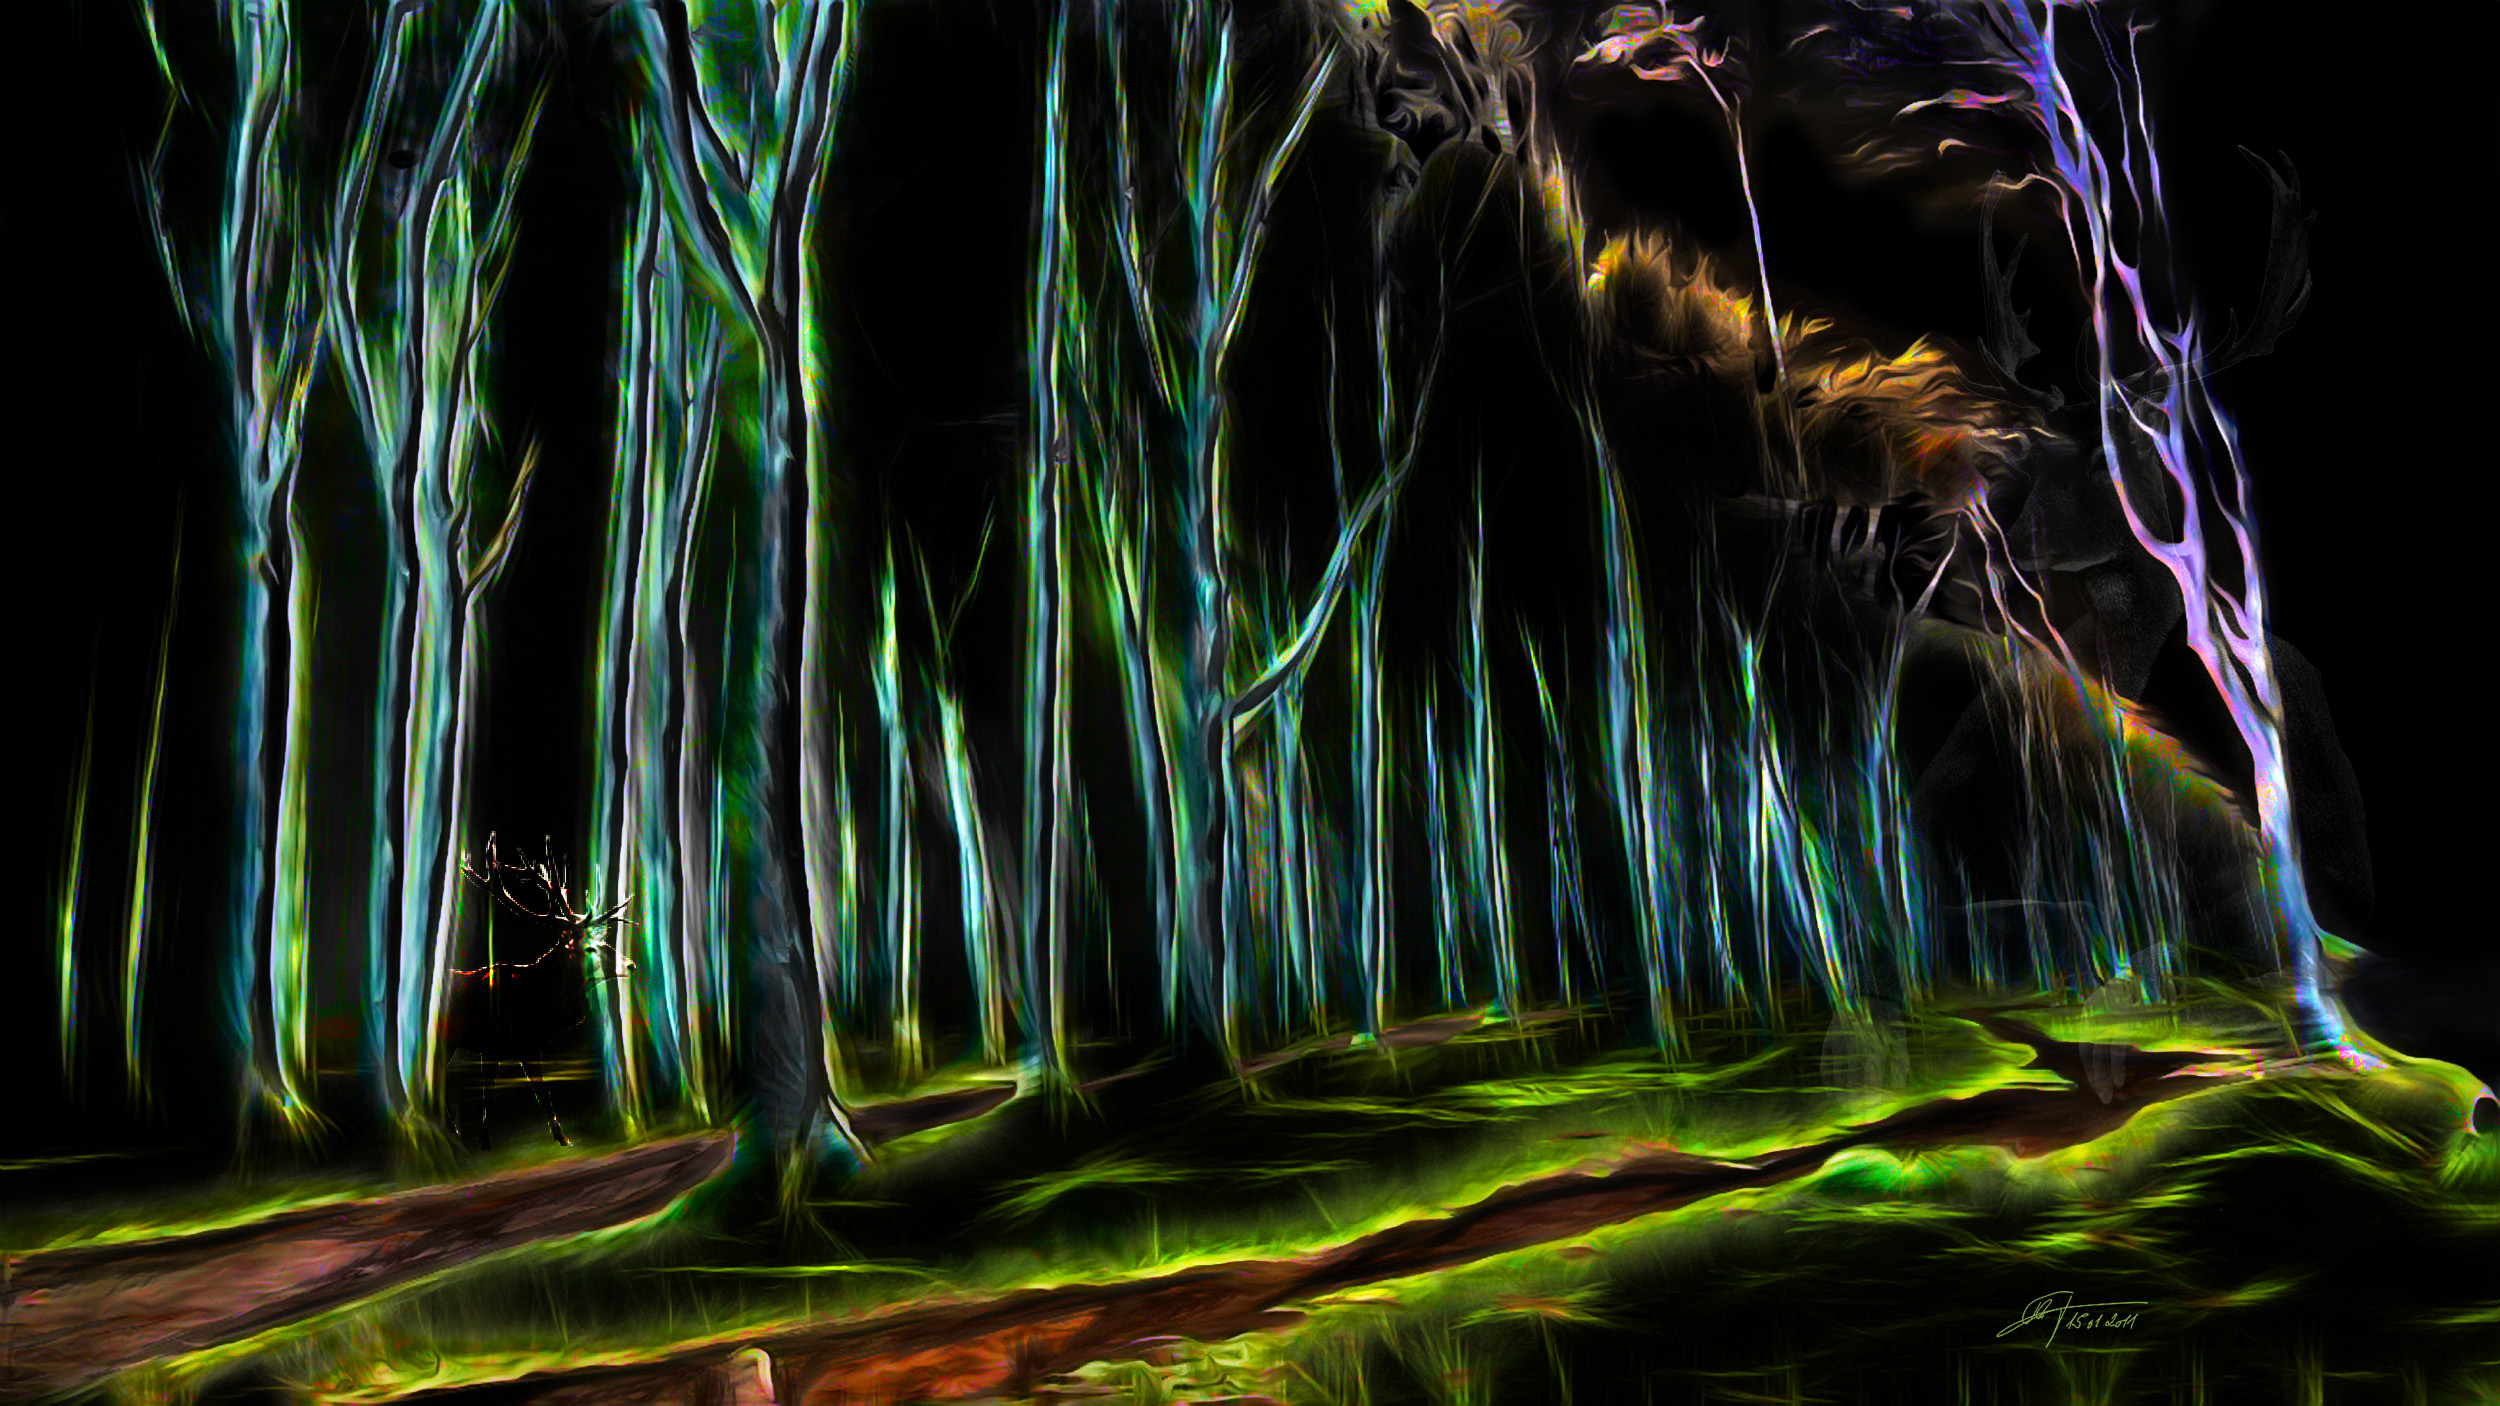 MWD 9; Contest; DarkArt; Forest; Mystic; Spooky